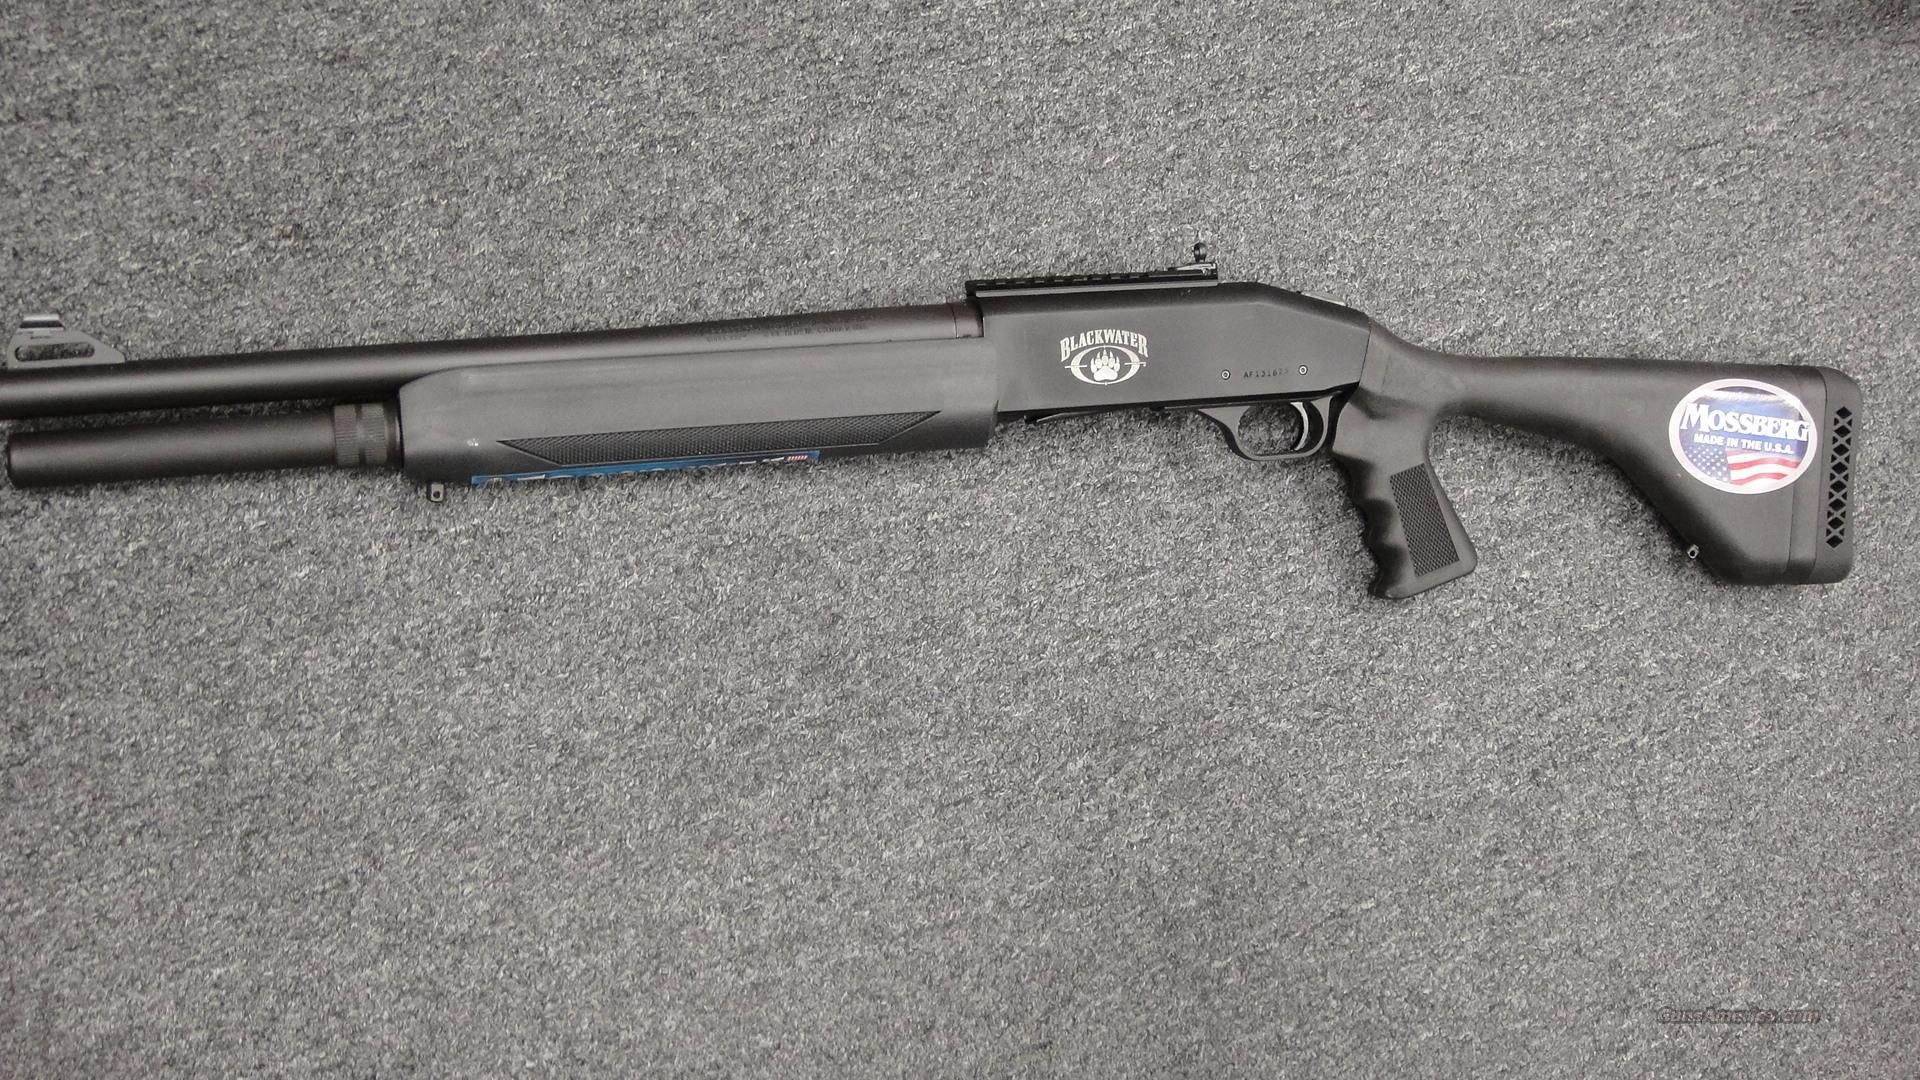 Mossberg 930 BlackWater for sale